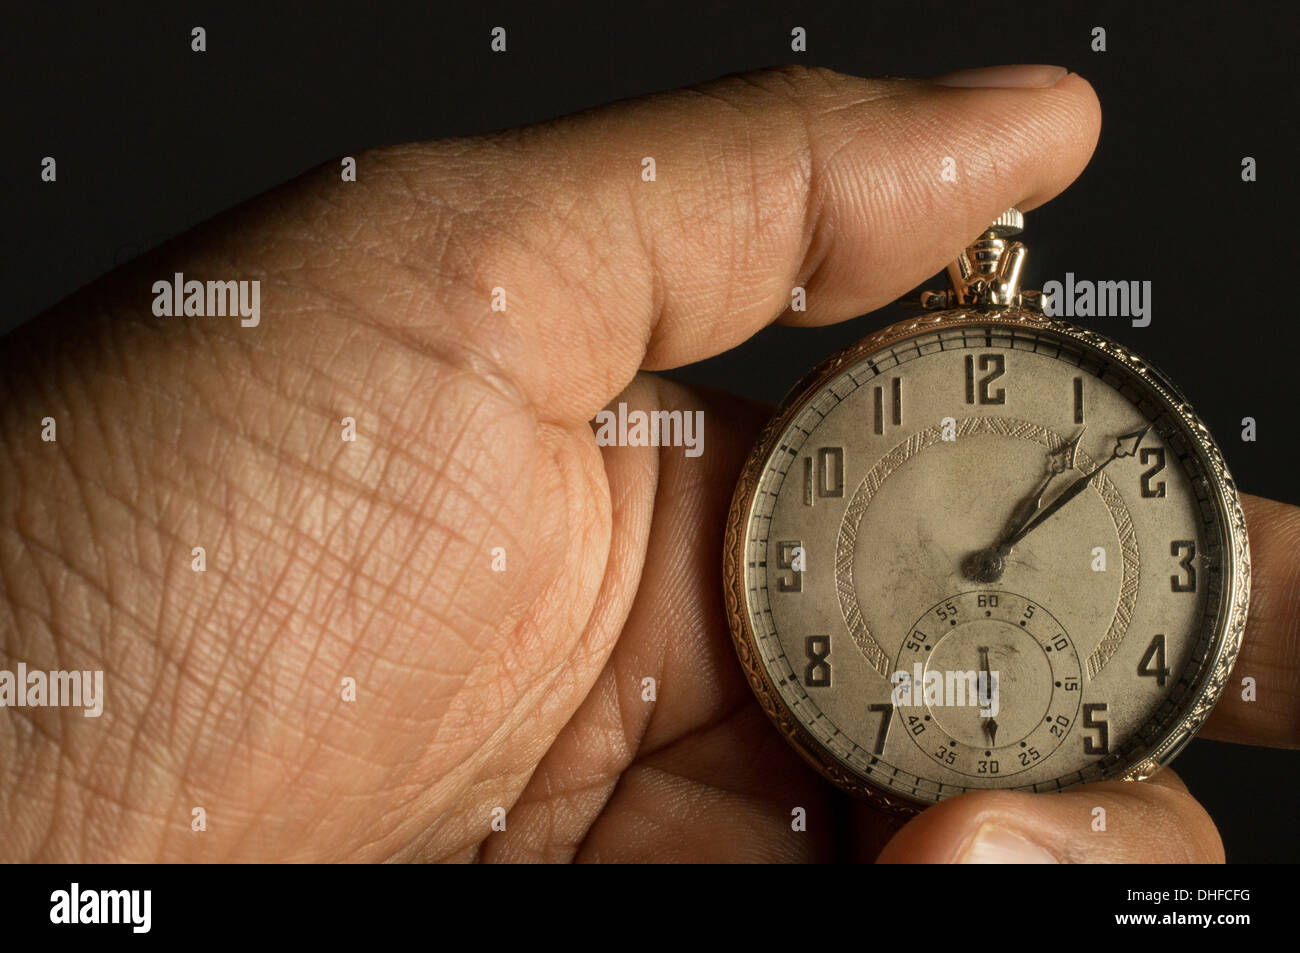 An African American hand holding an antique pocket watch - Stock Image